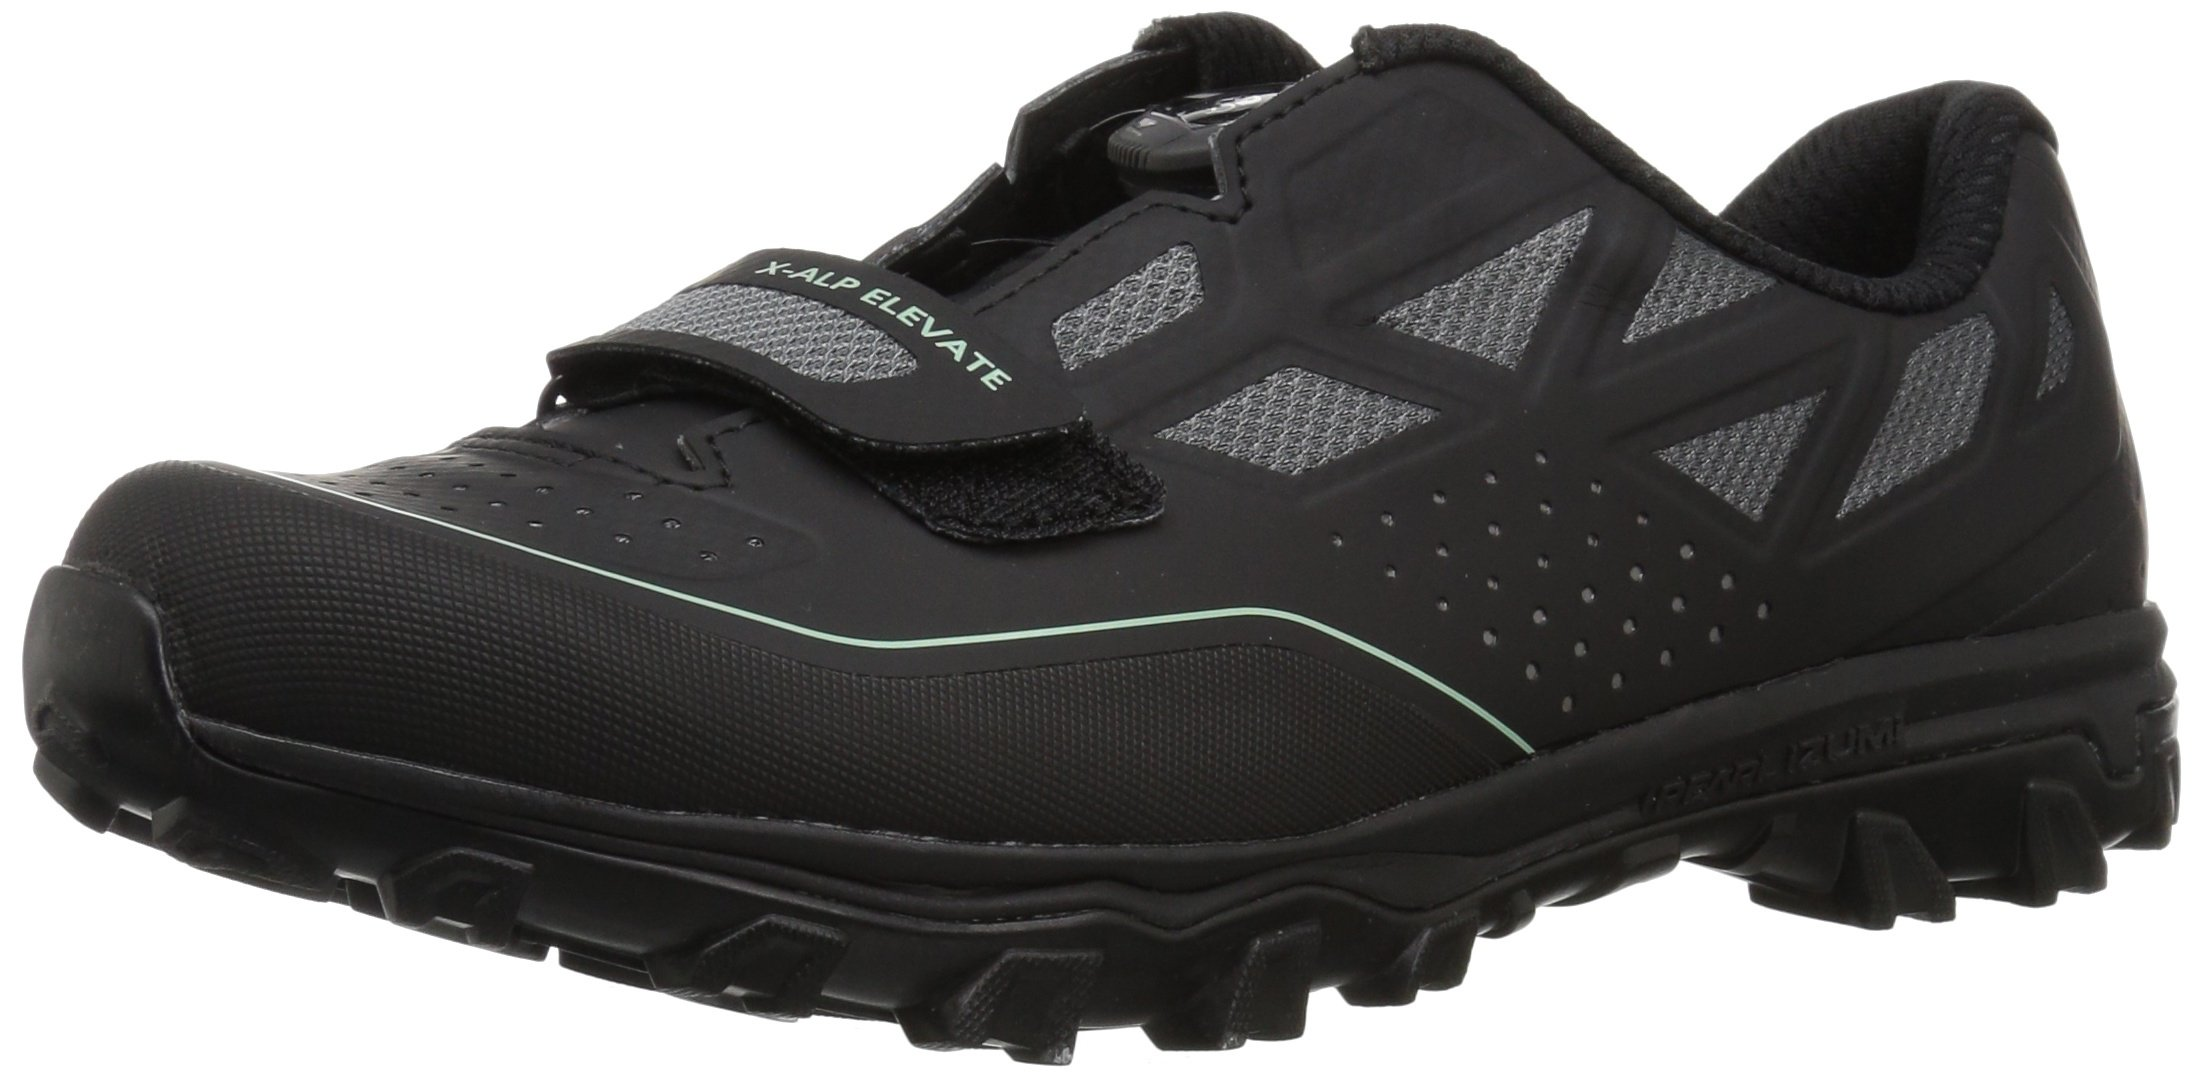 Pearl Izumi Women's W X-ALP Elevate Cycling Shoe, Black/Black, 42.0 M EU (10 US)